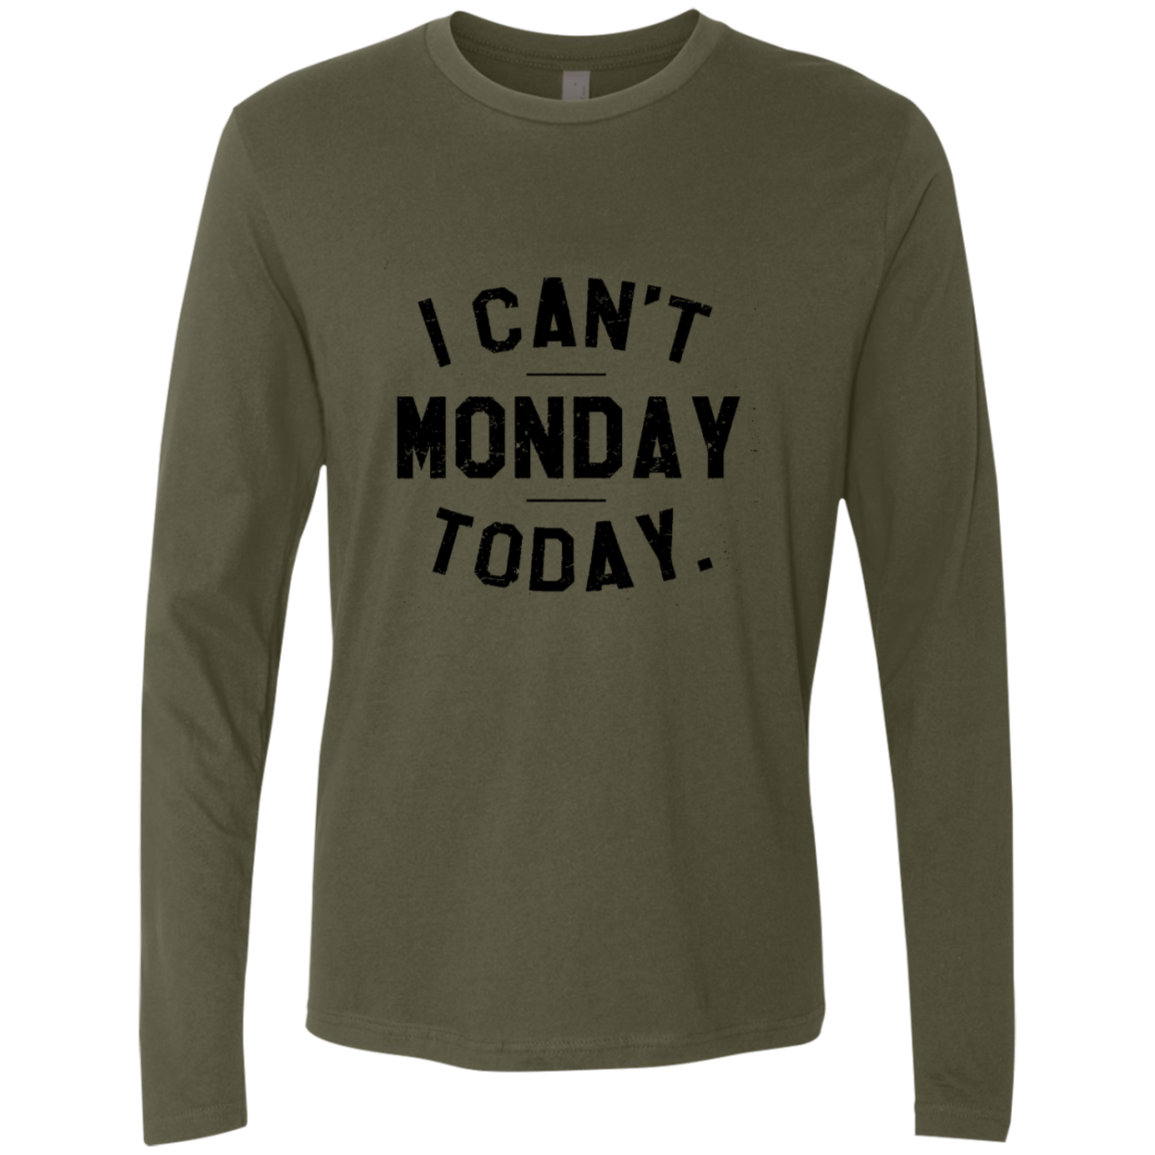 I Can't Monday Today Men's Long Sleeve Tee